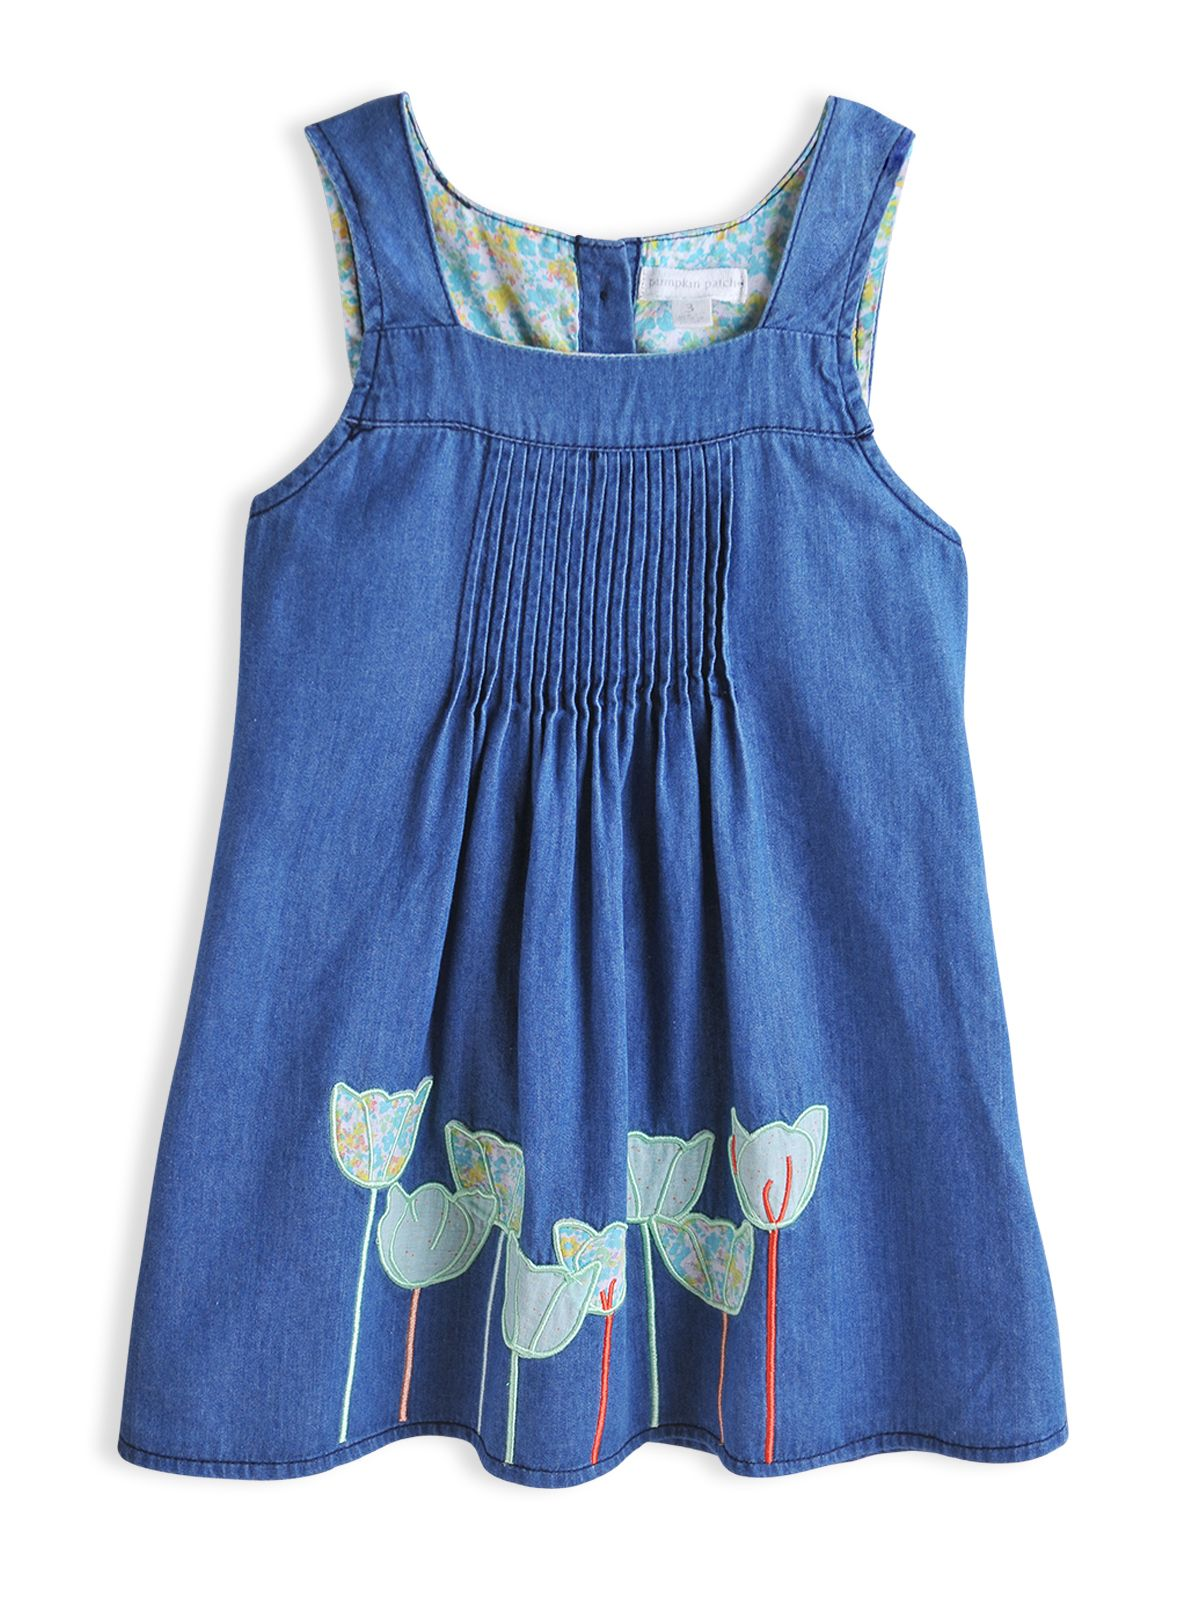 Girls denim pintuck dress